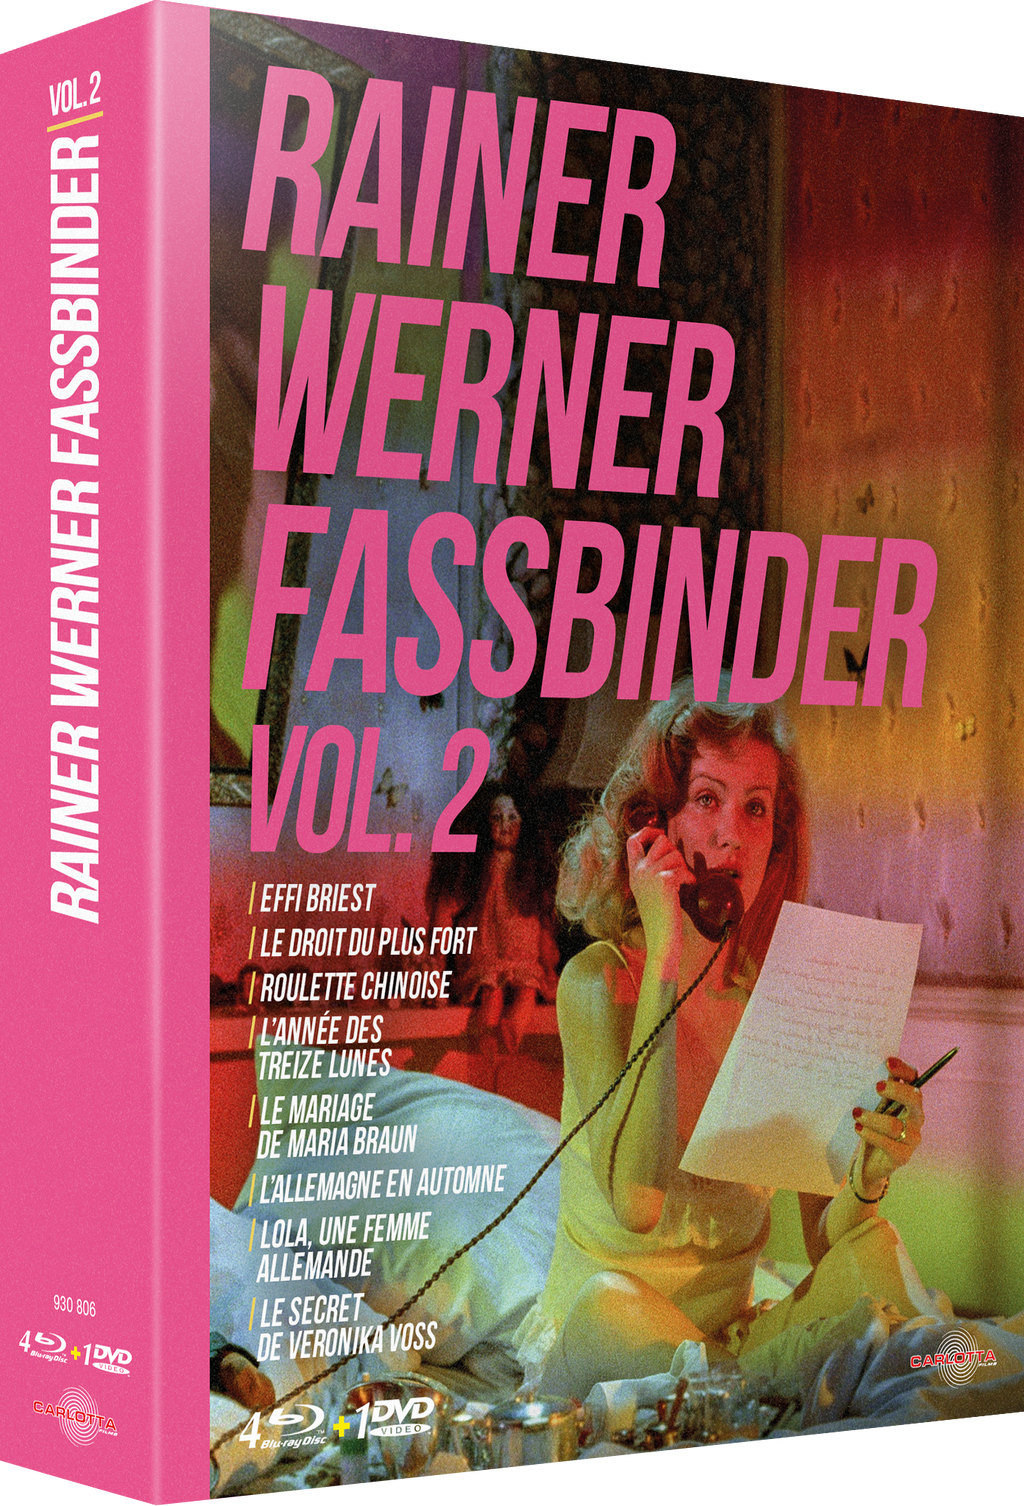 Coffret Rainer Werner Fassbinder Vol. 2 - Blu-ray - CARLOTTA FILMS - La Boutique